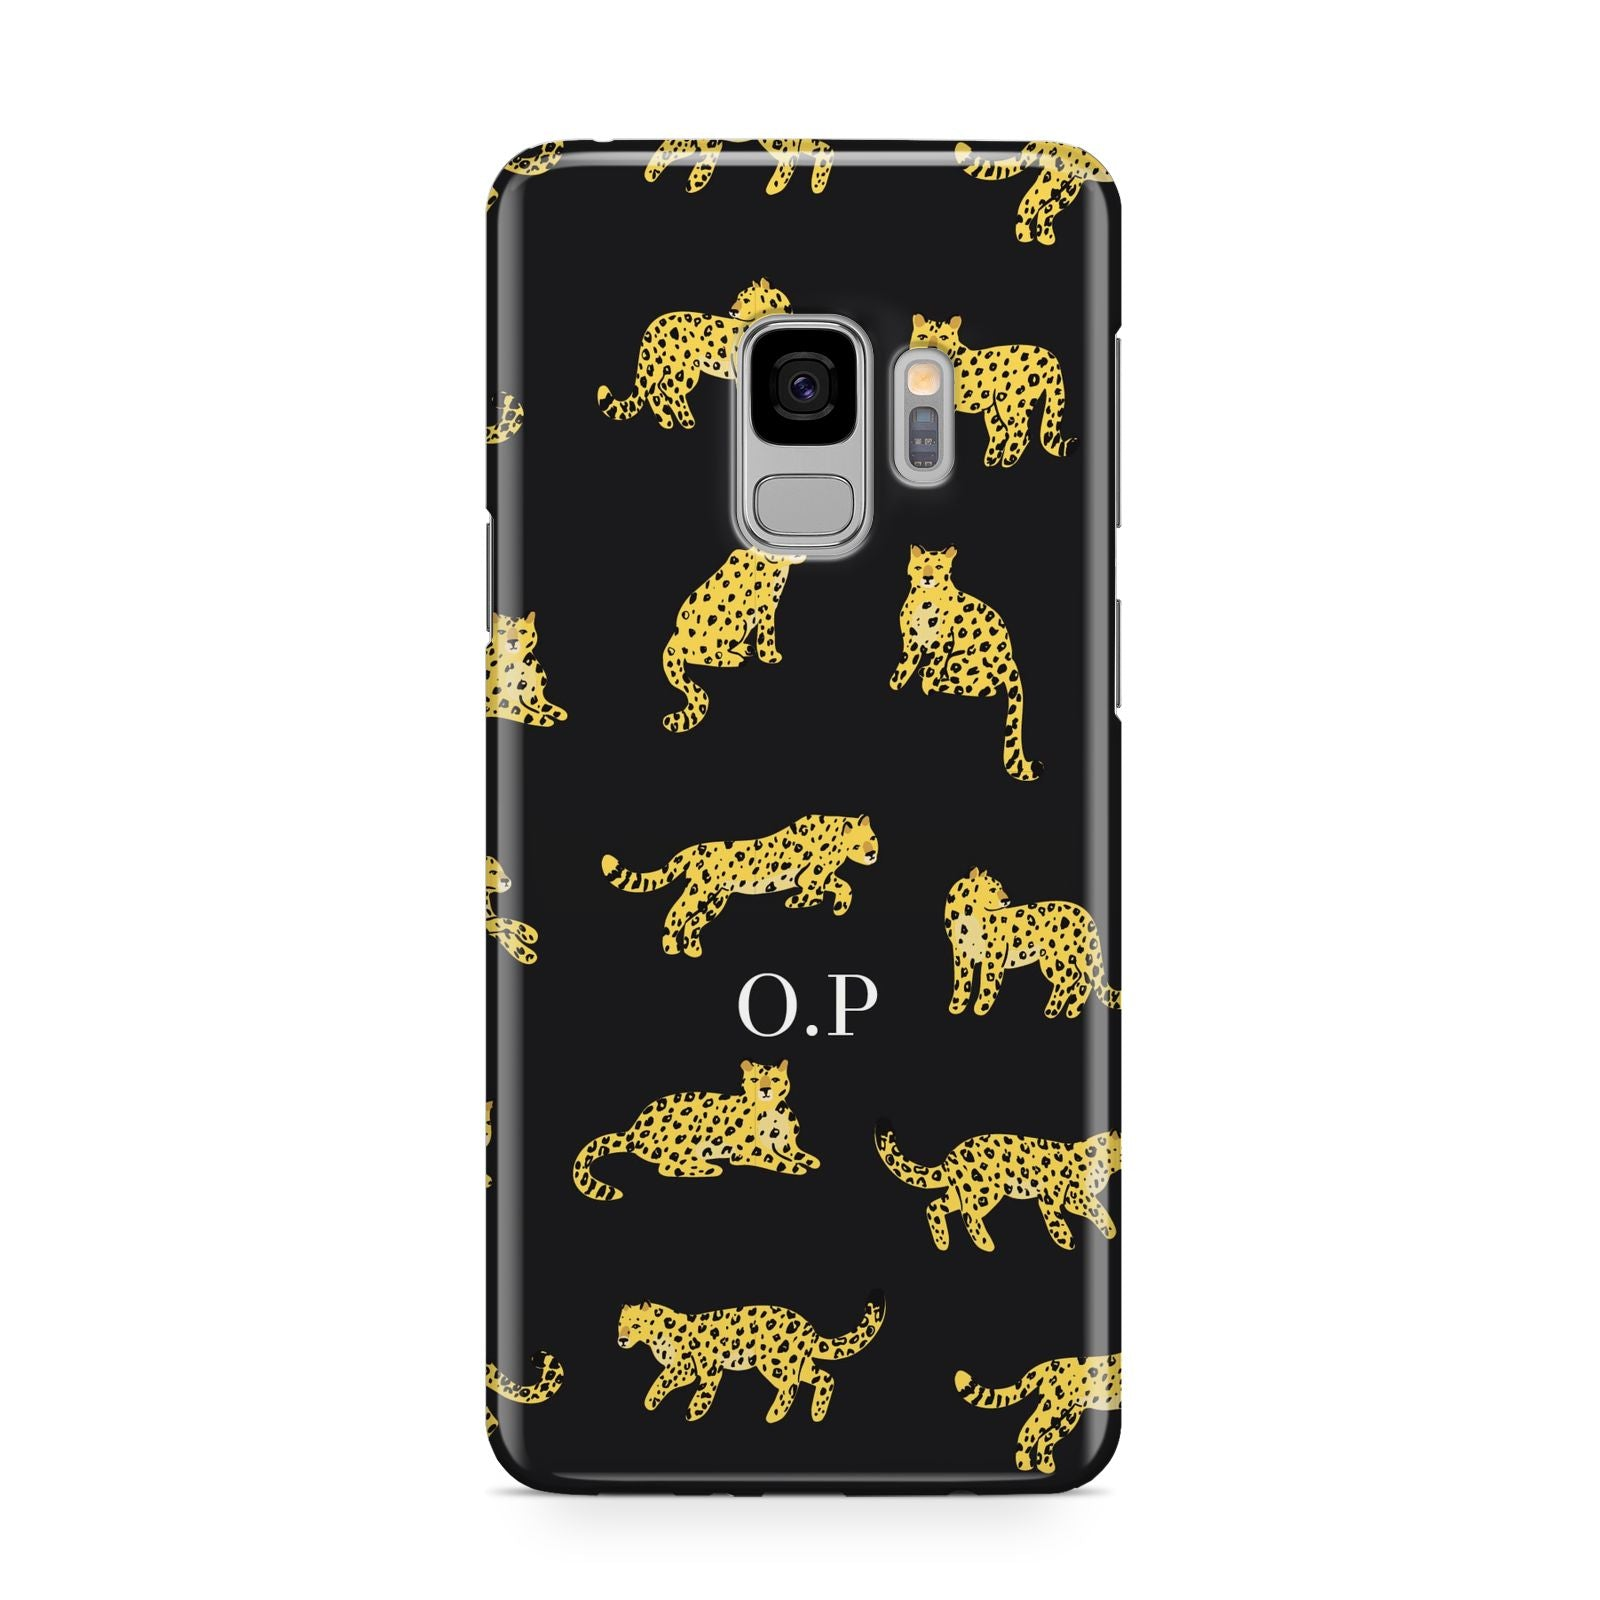 Prowling Leopard Samsung Galaxy S9 Case